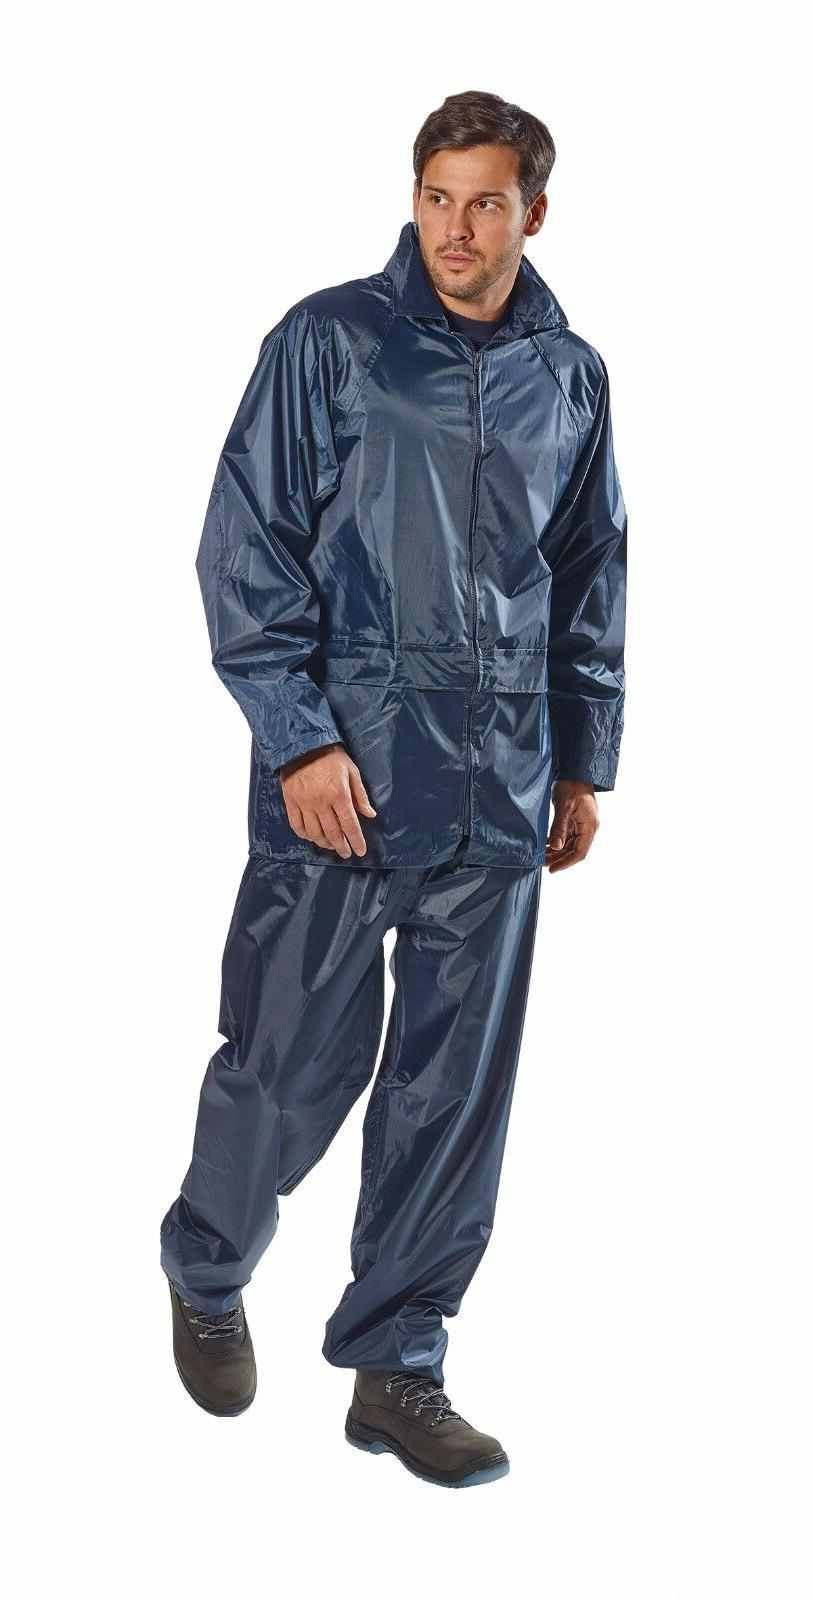 Portwest US440 Classic Jacket, Waterproof with